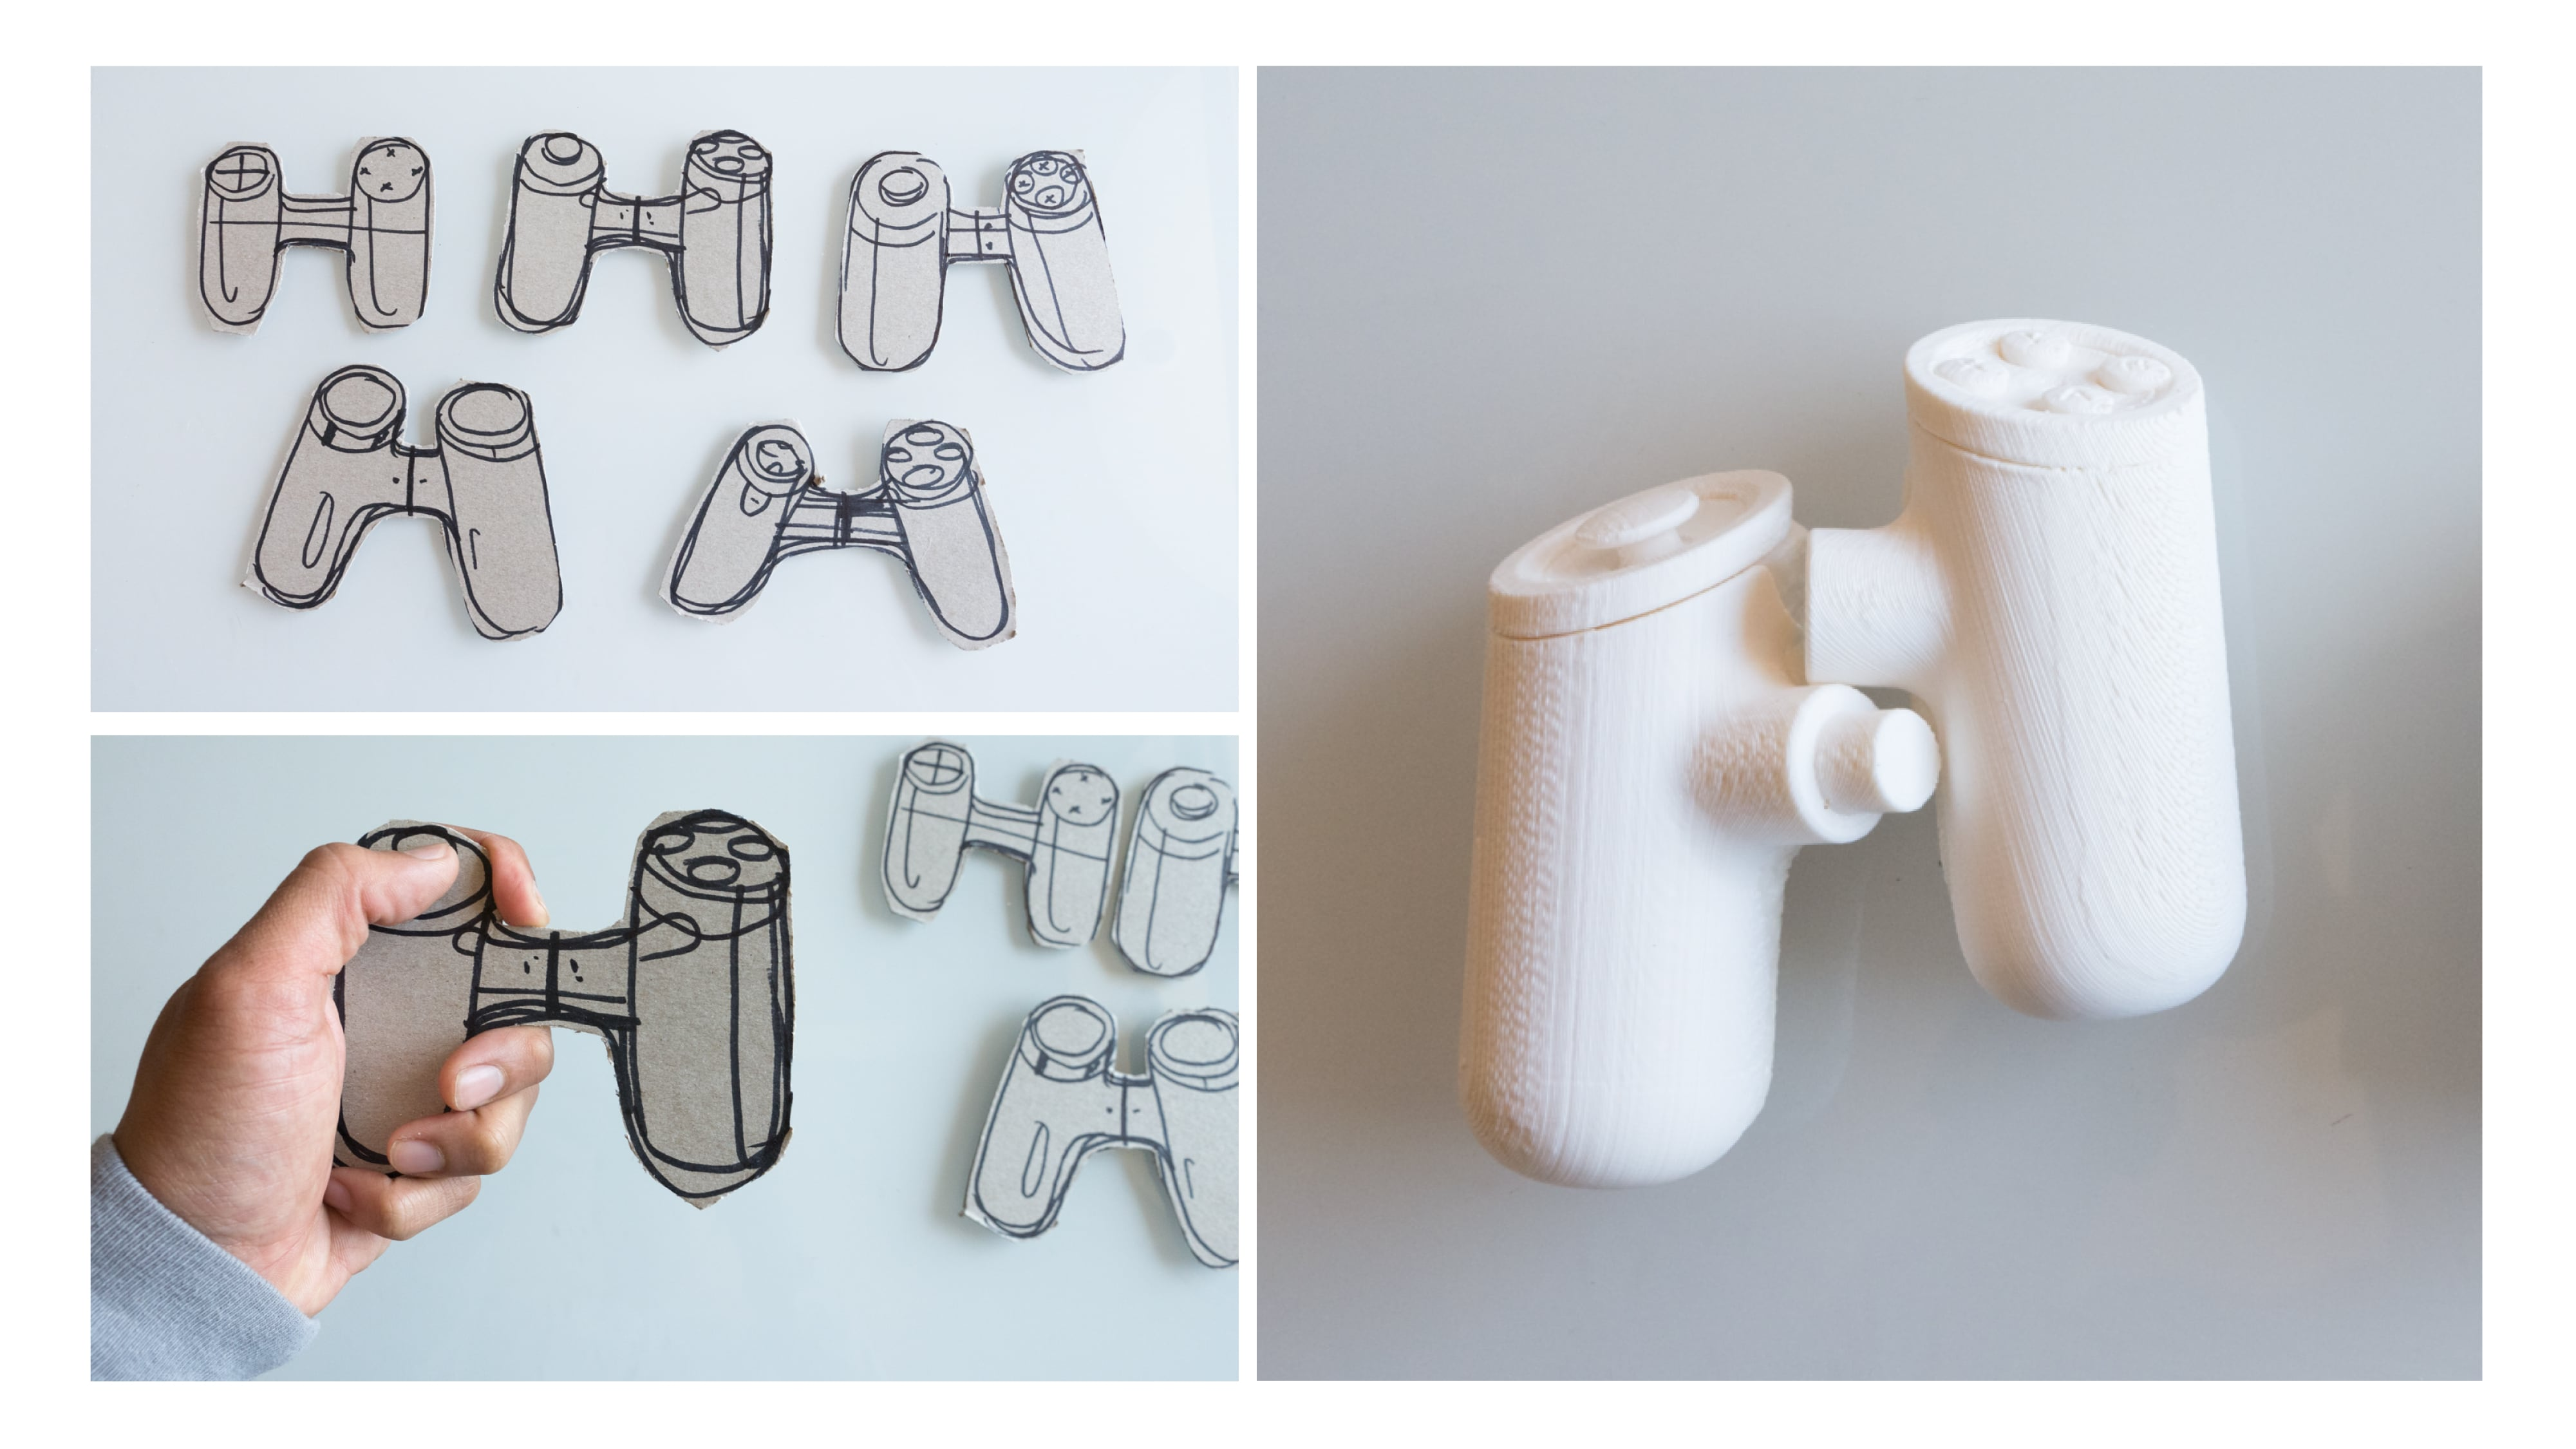 Creative Session's industrial design and branding work.